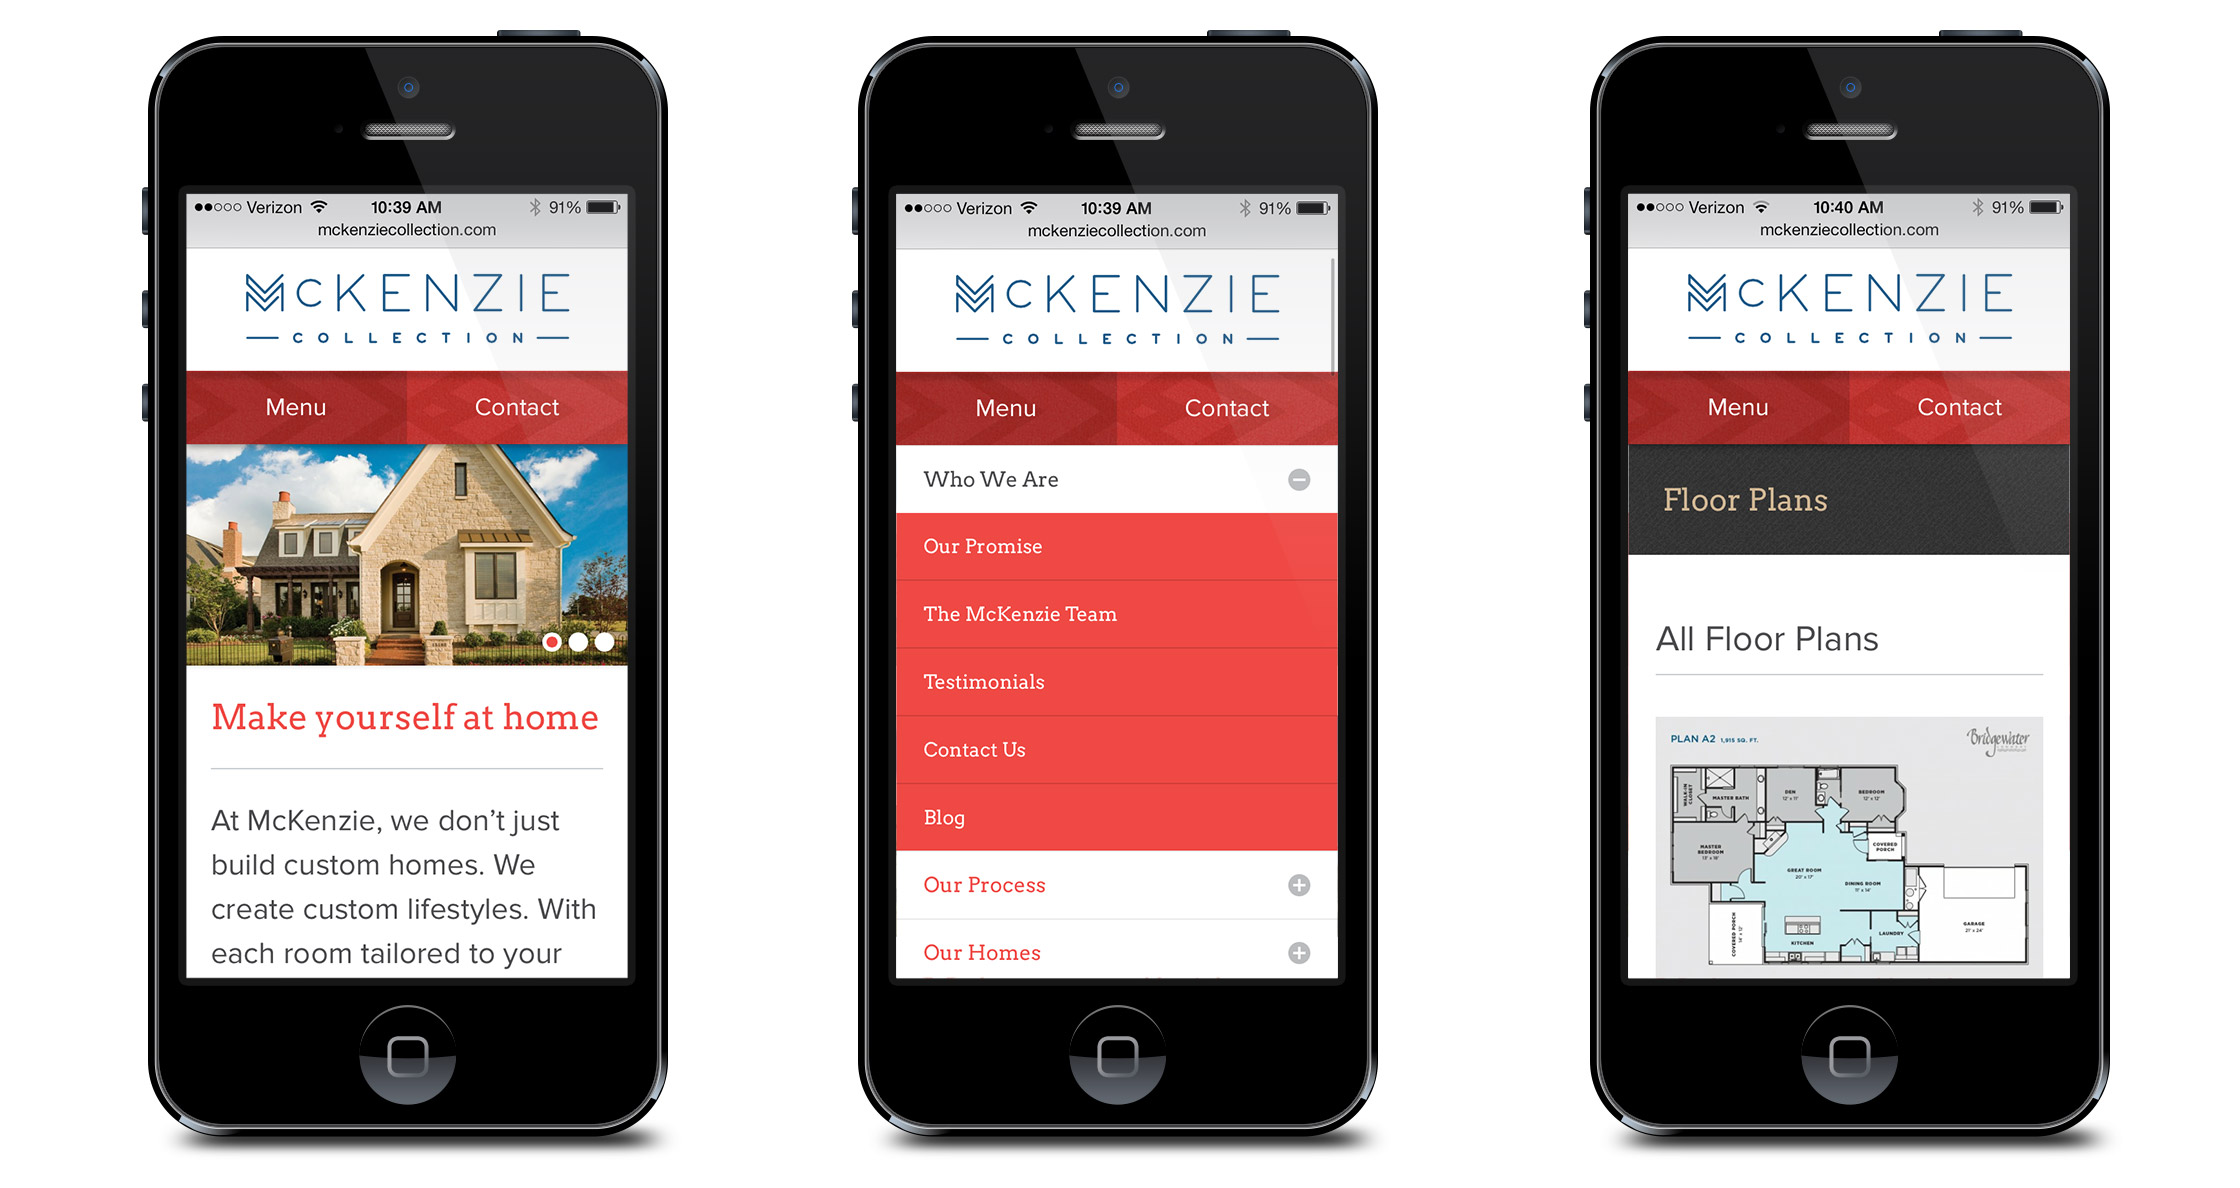 McKenzie Collection Mobile Website